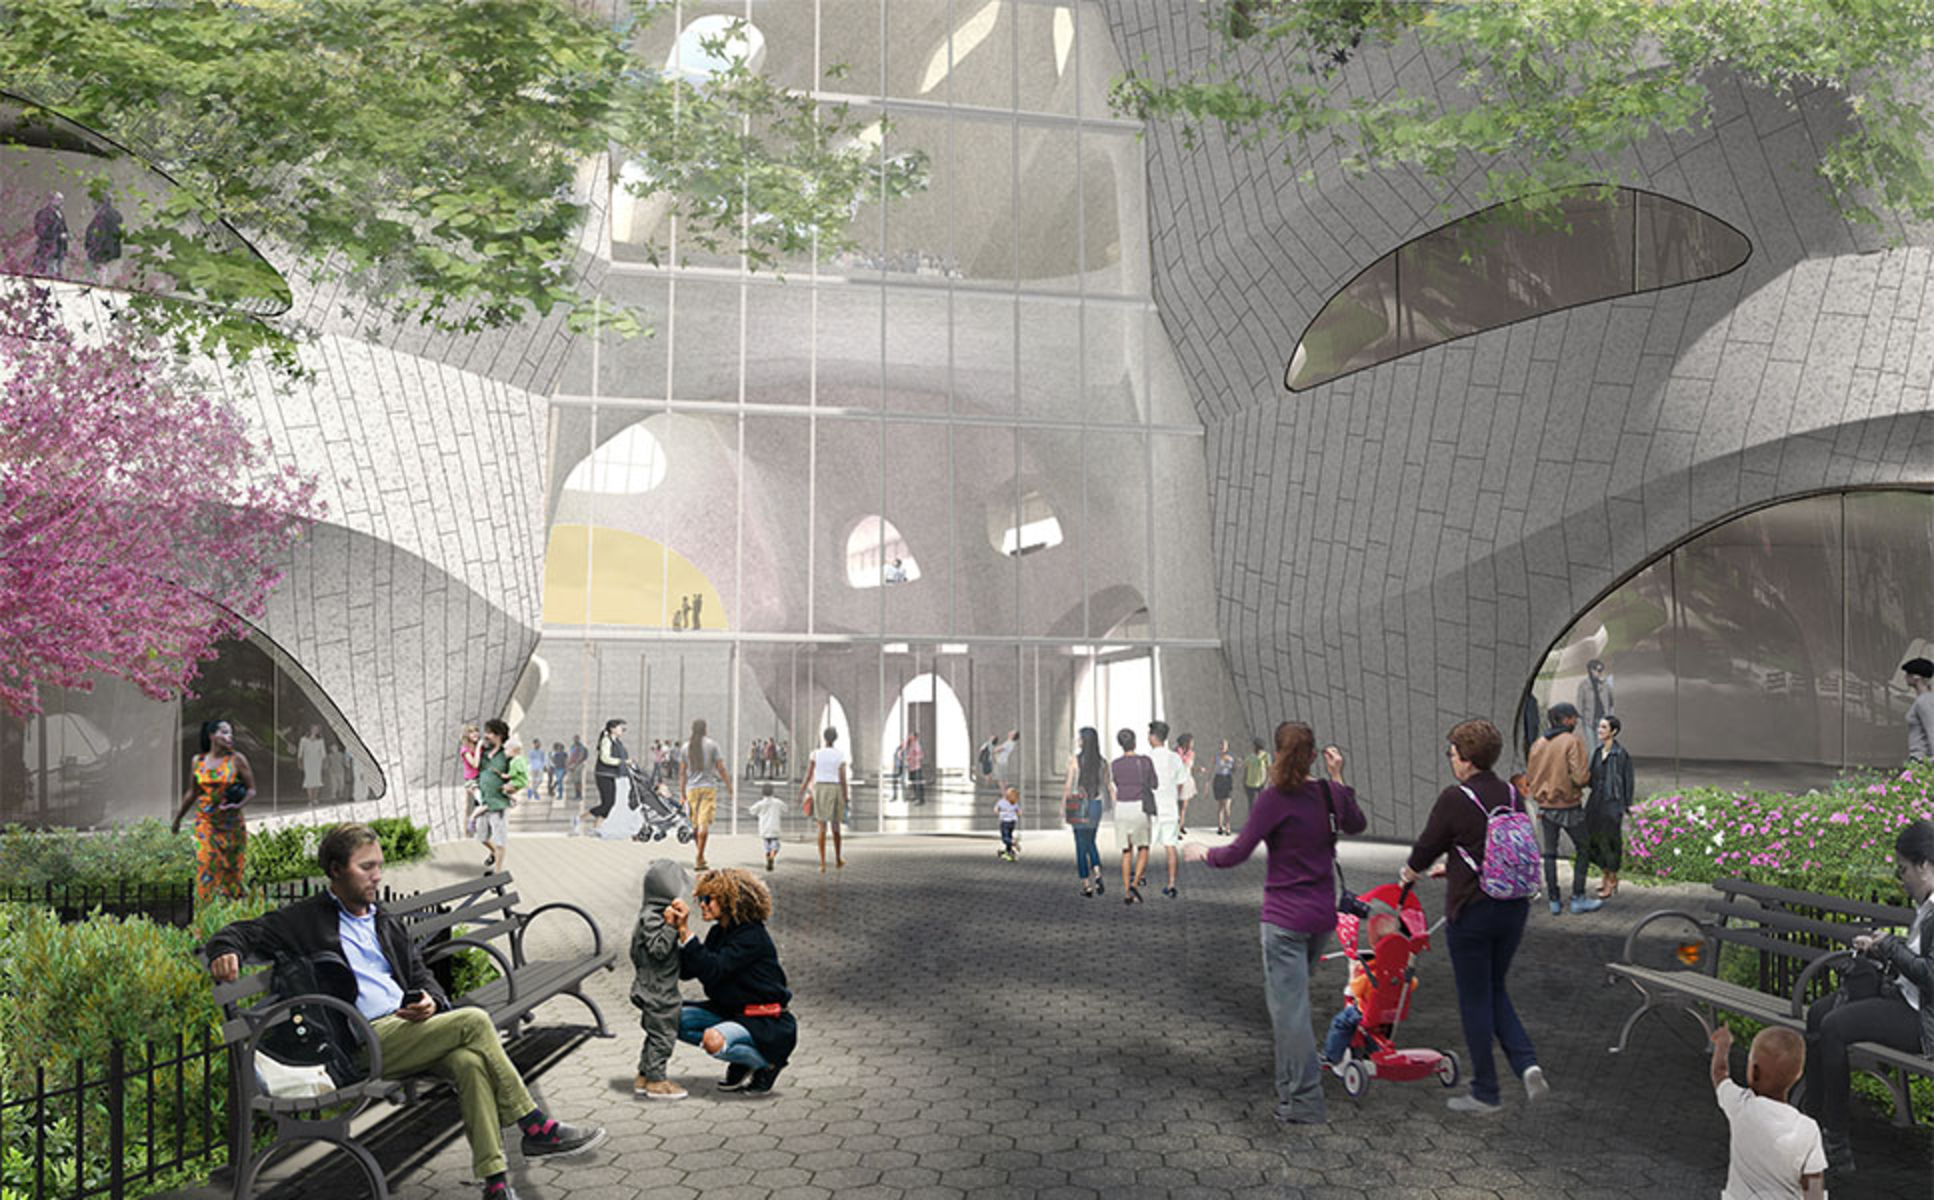 Renderings of people sitting on benches and approaching the entrance of the new Gilder Center.